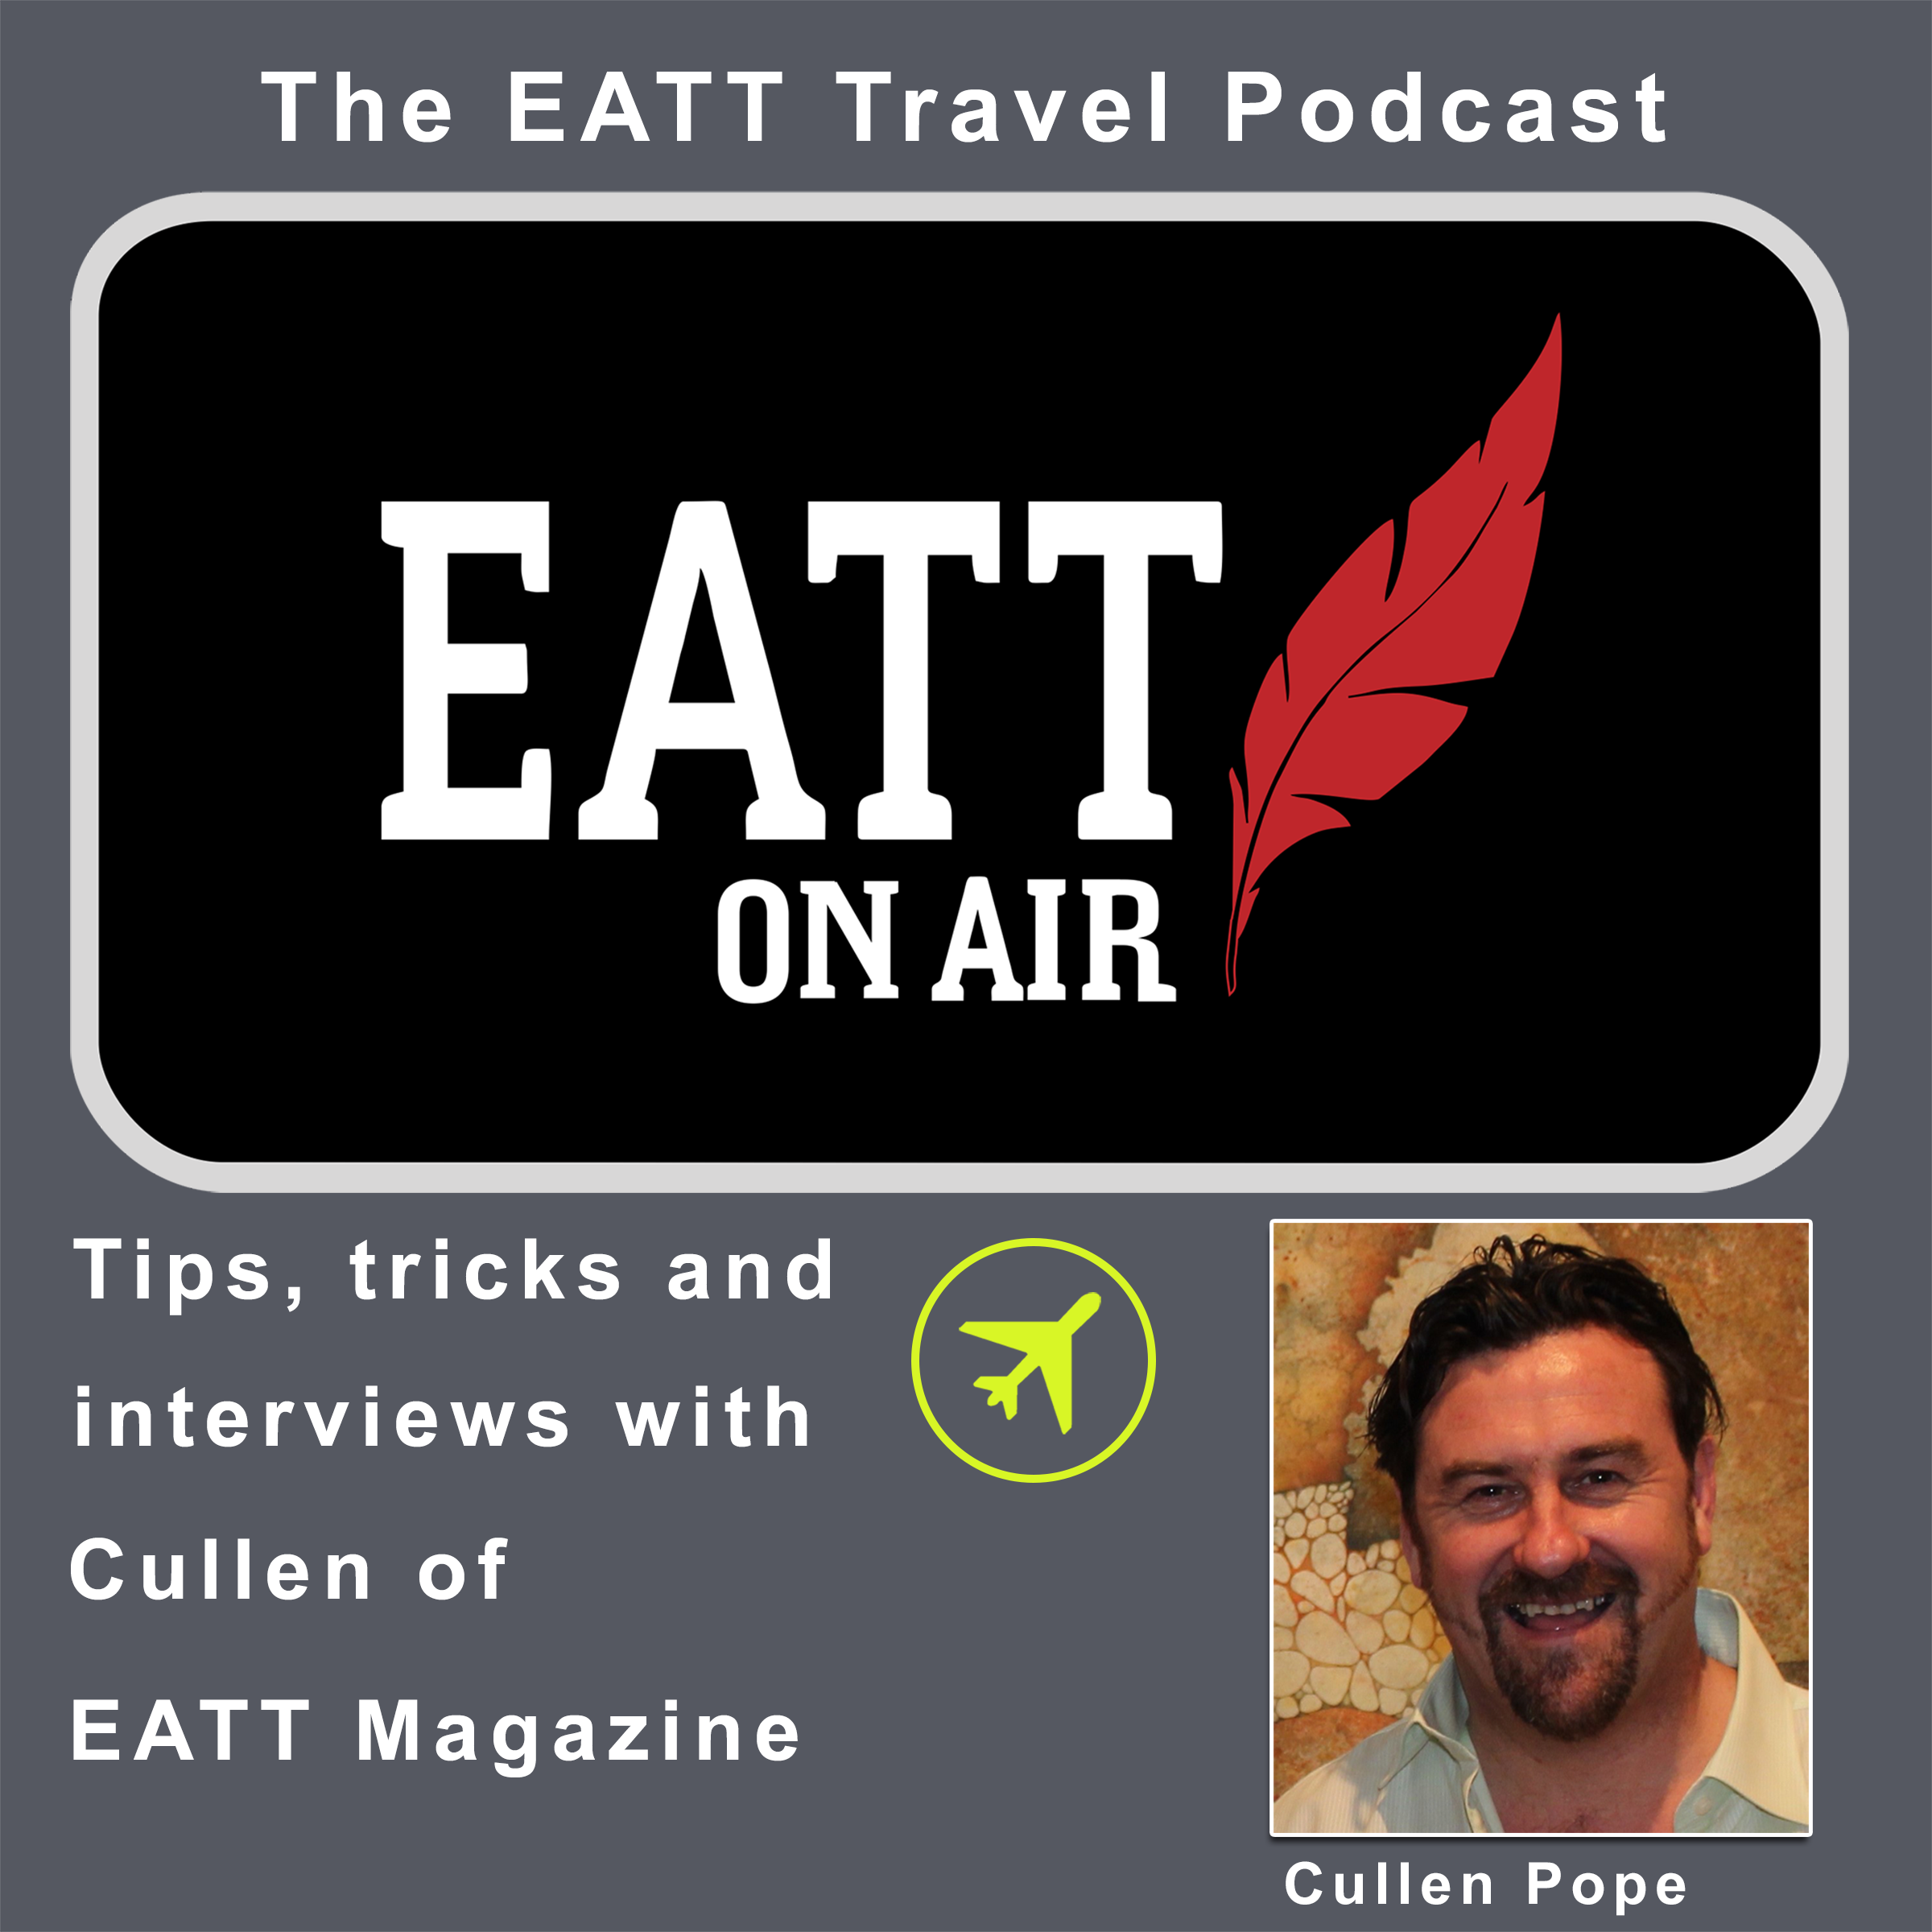 EATT Magazine podcast